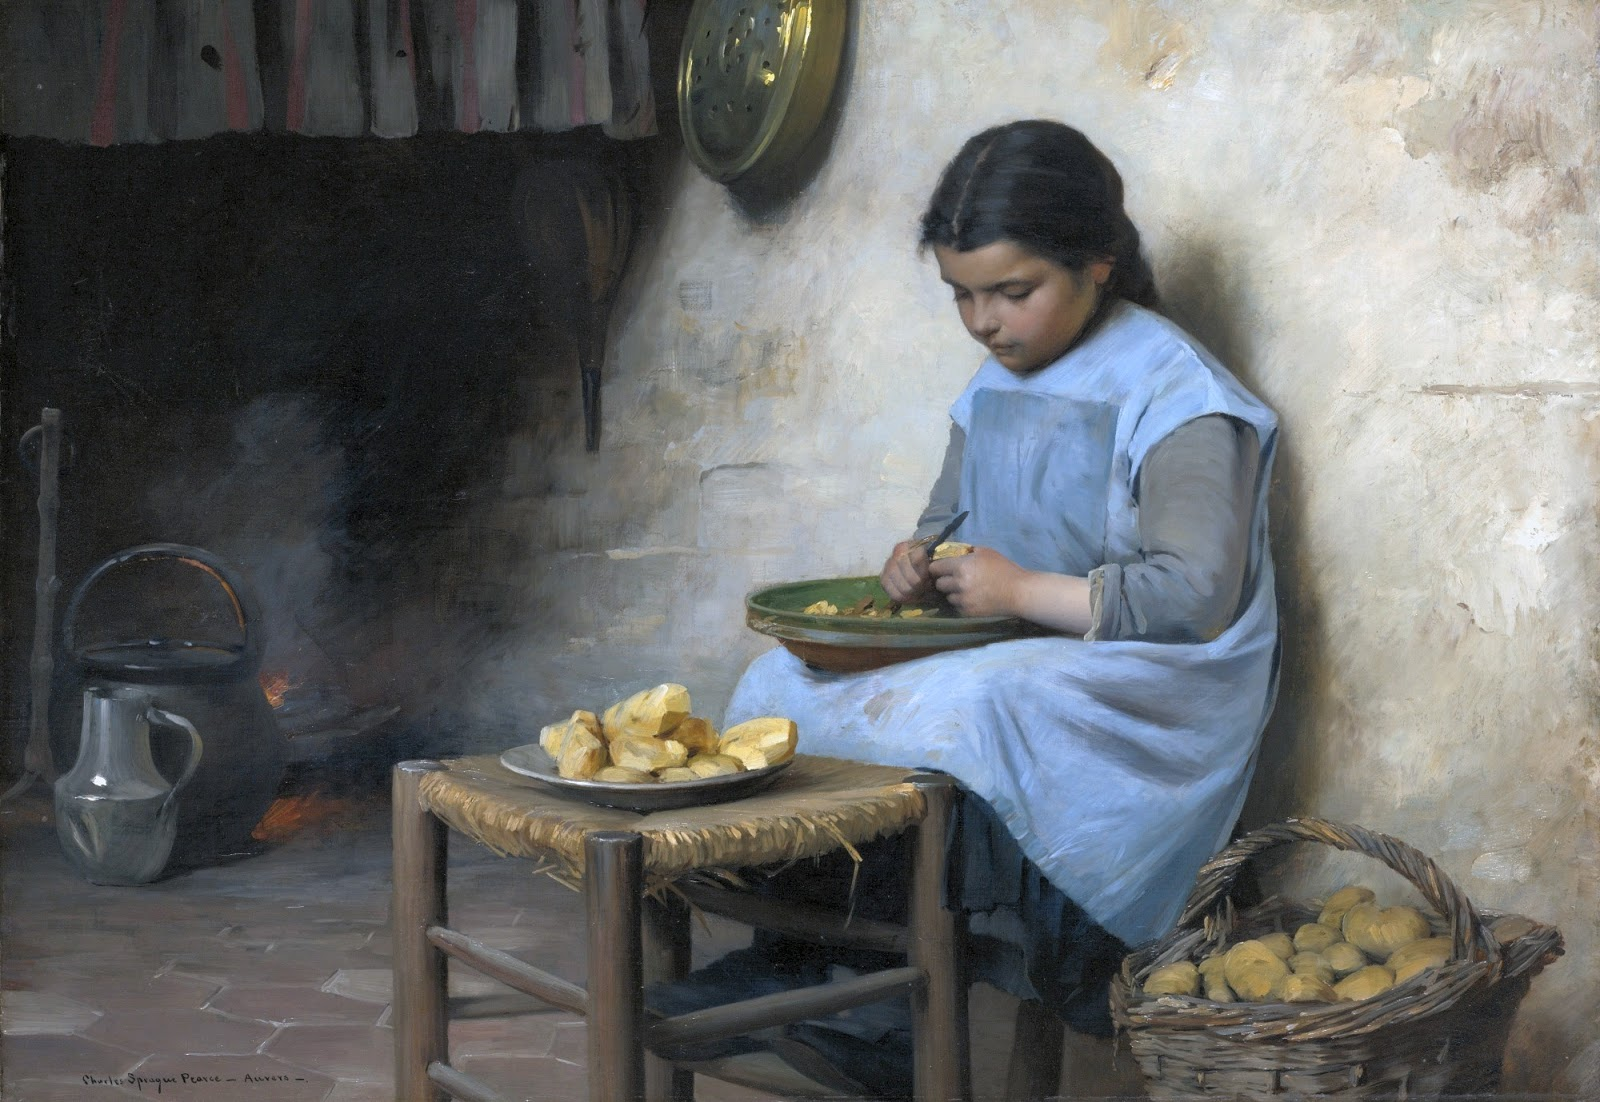 Charles  Sprague  Pearce  peeling  potatoes